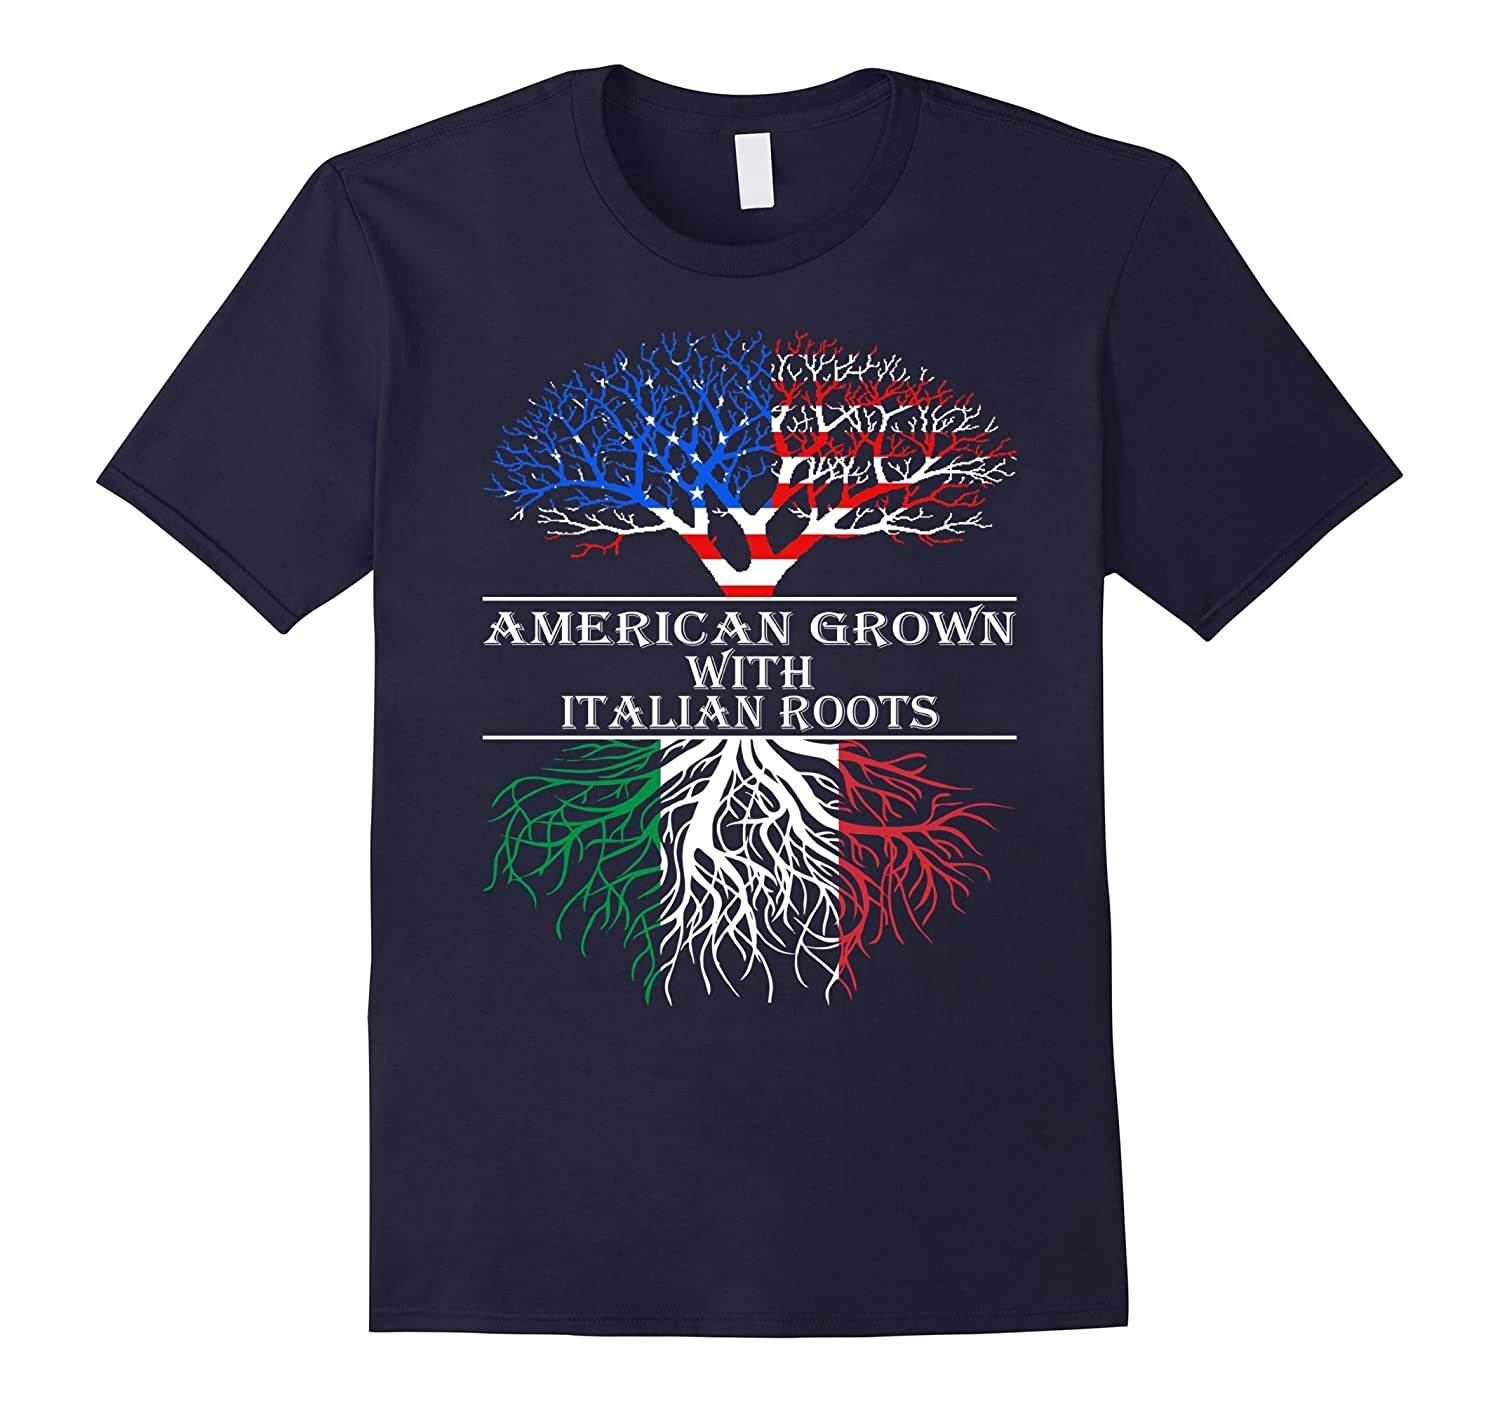 American Grown With Italian Roots T-Shirt Tshirt-ah my shirt one gift